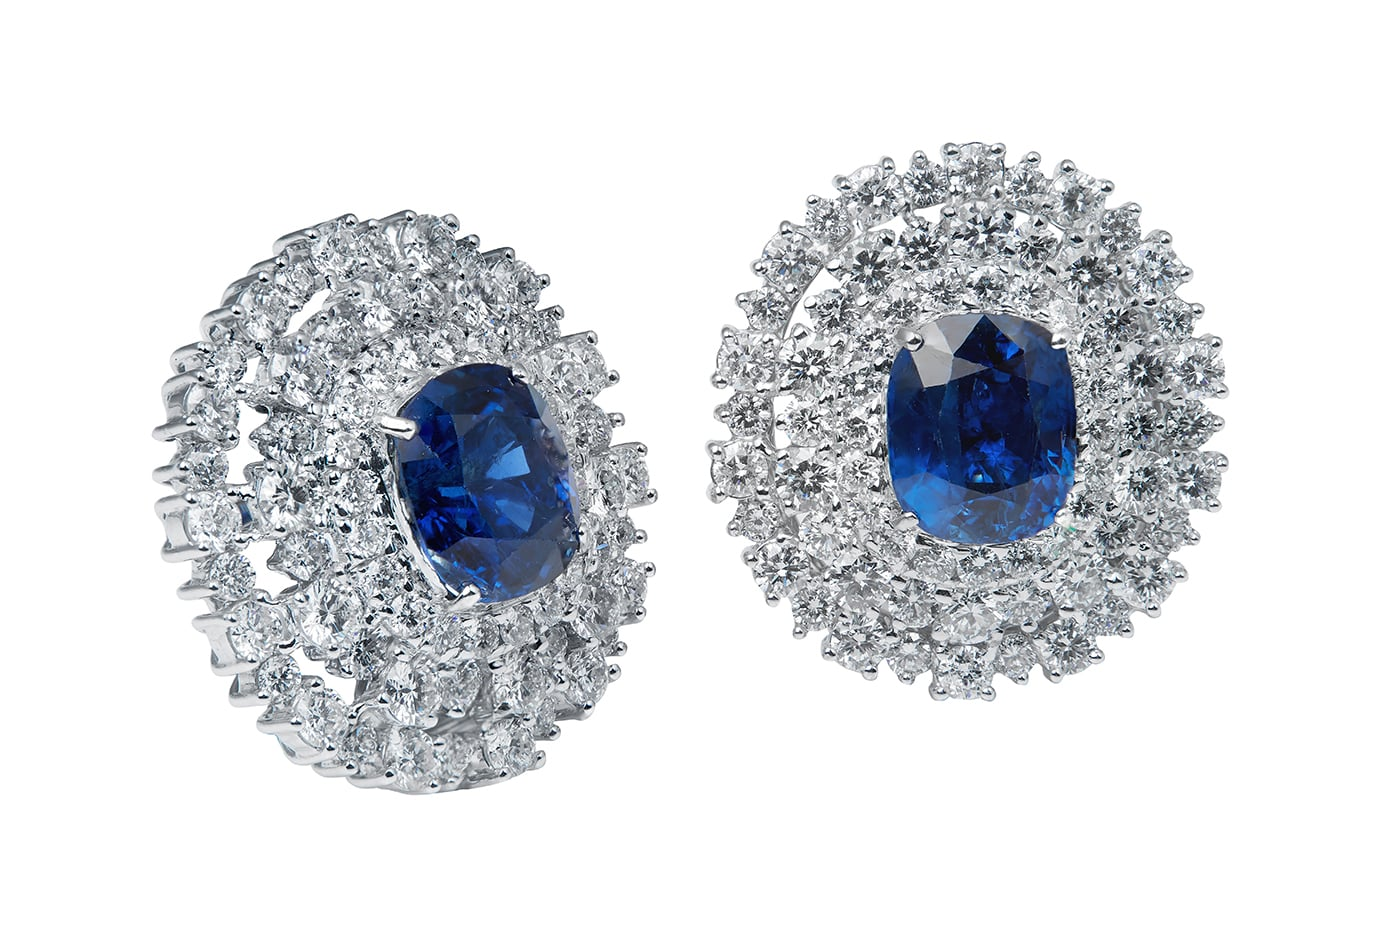 Peacock Blue Sapphire Earrings